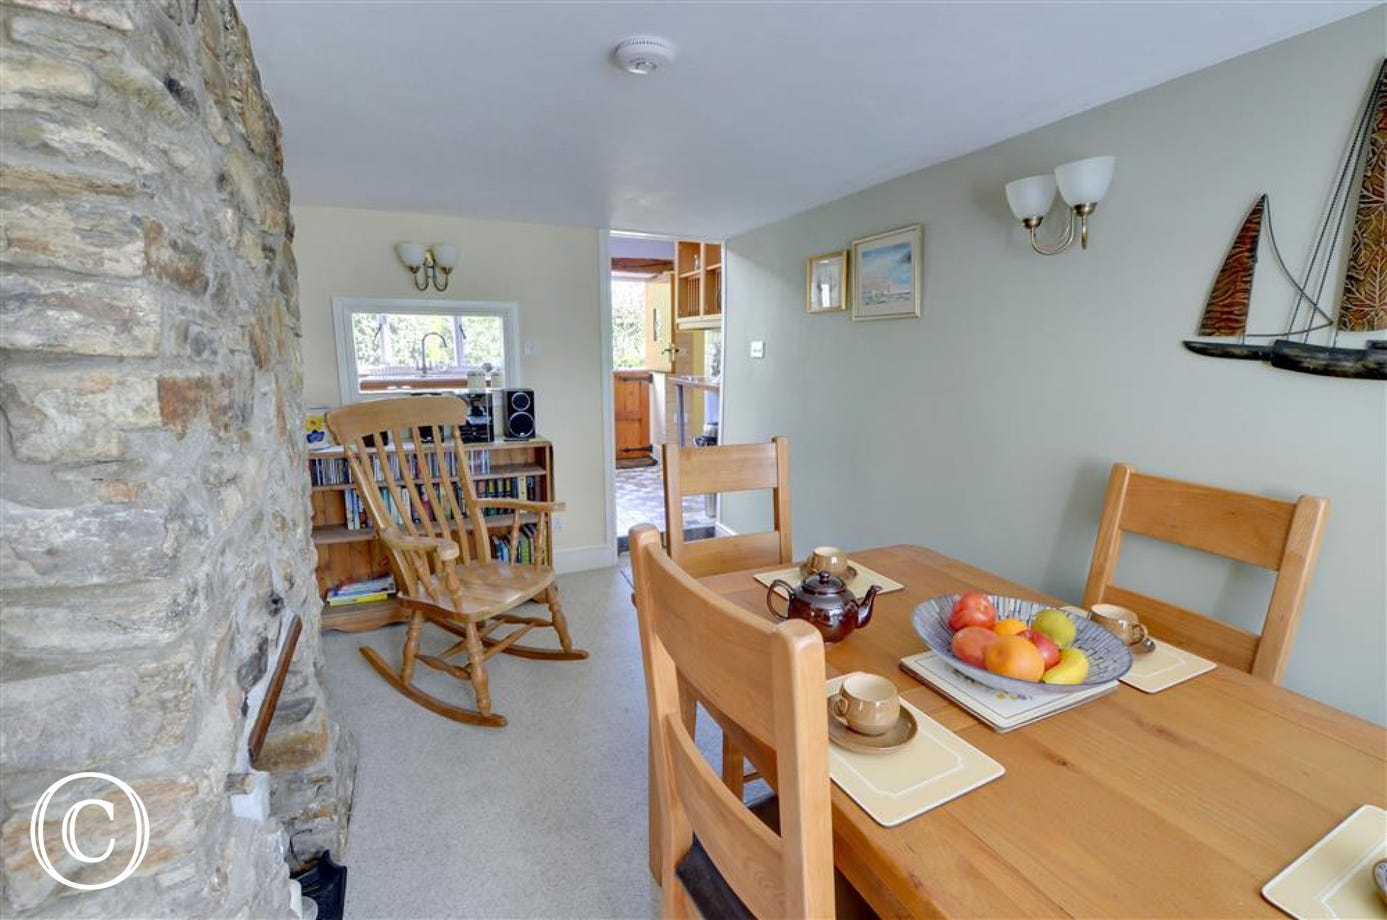 One step down takes you to the dining area leading through to the attractive kitchen